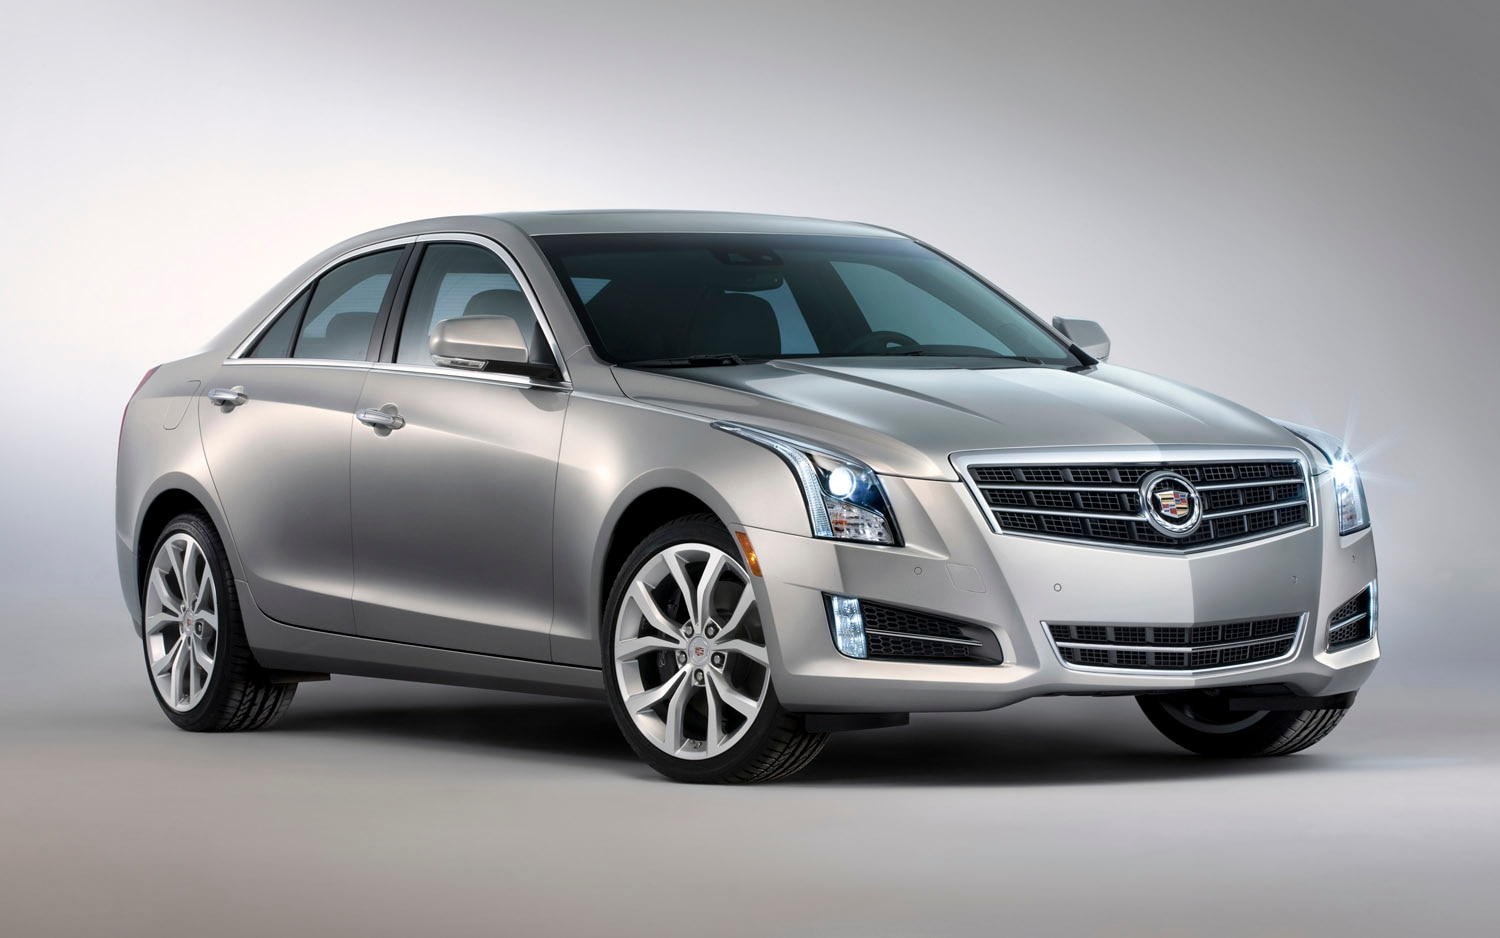 Nhtsa Gives 2013 Cadillac Ats Perfect Score And Five Star Overall Rating